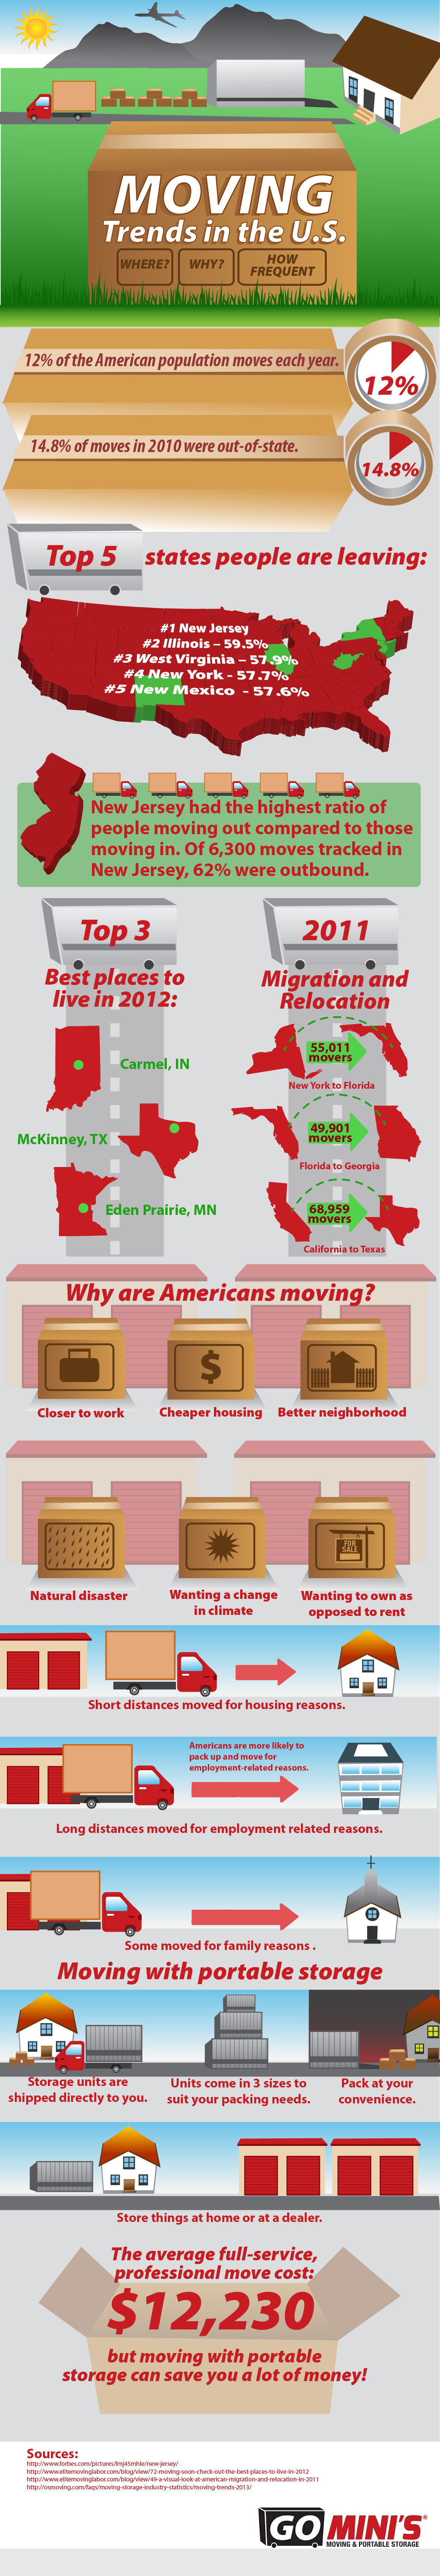 Moving trends in United States